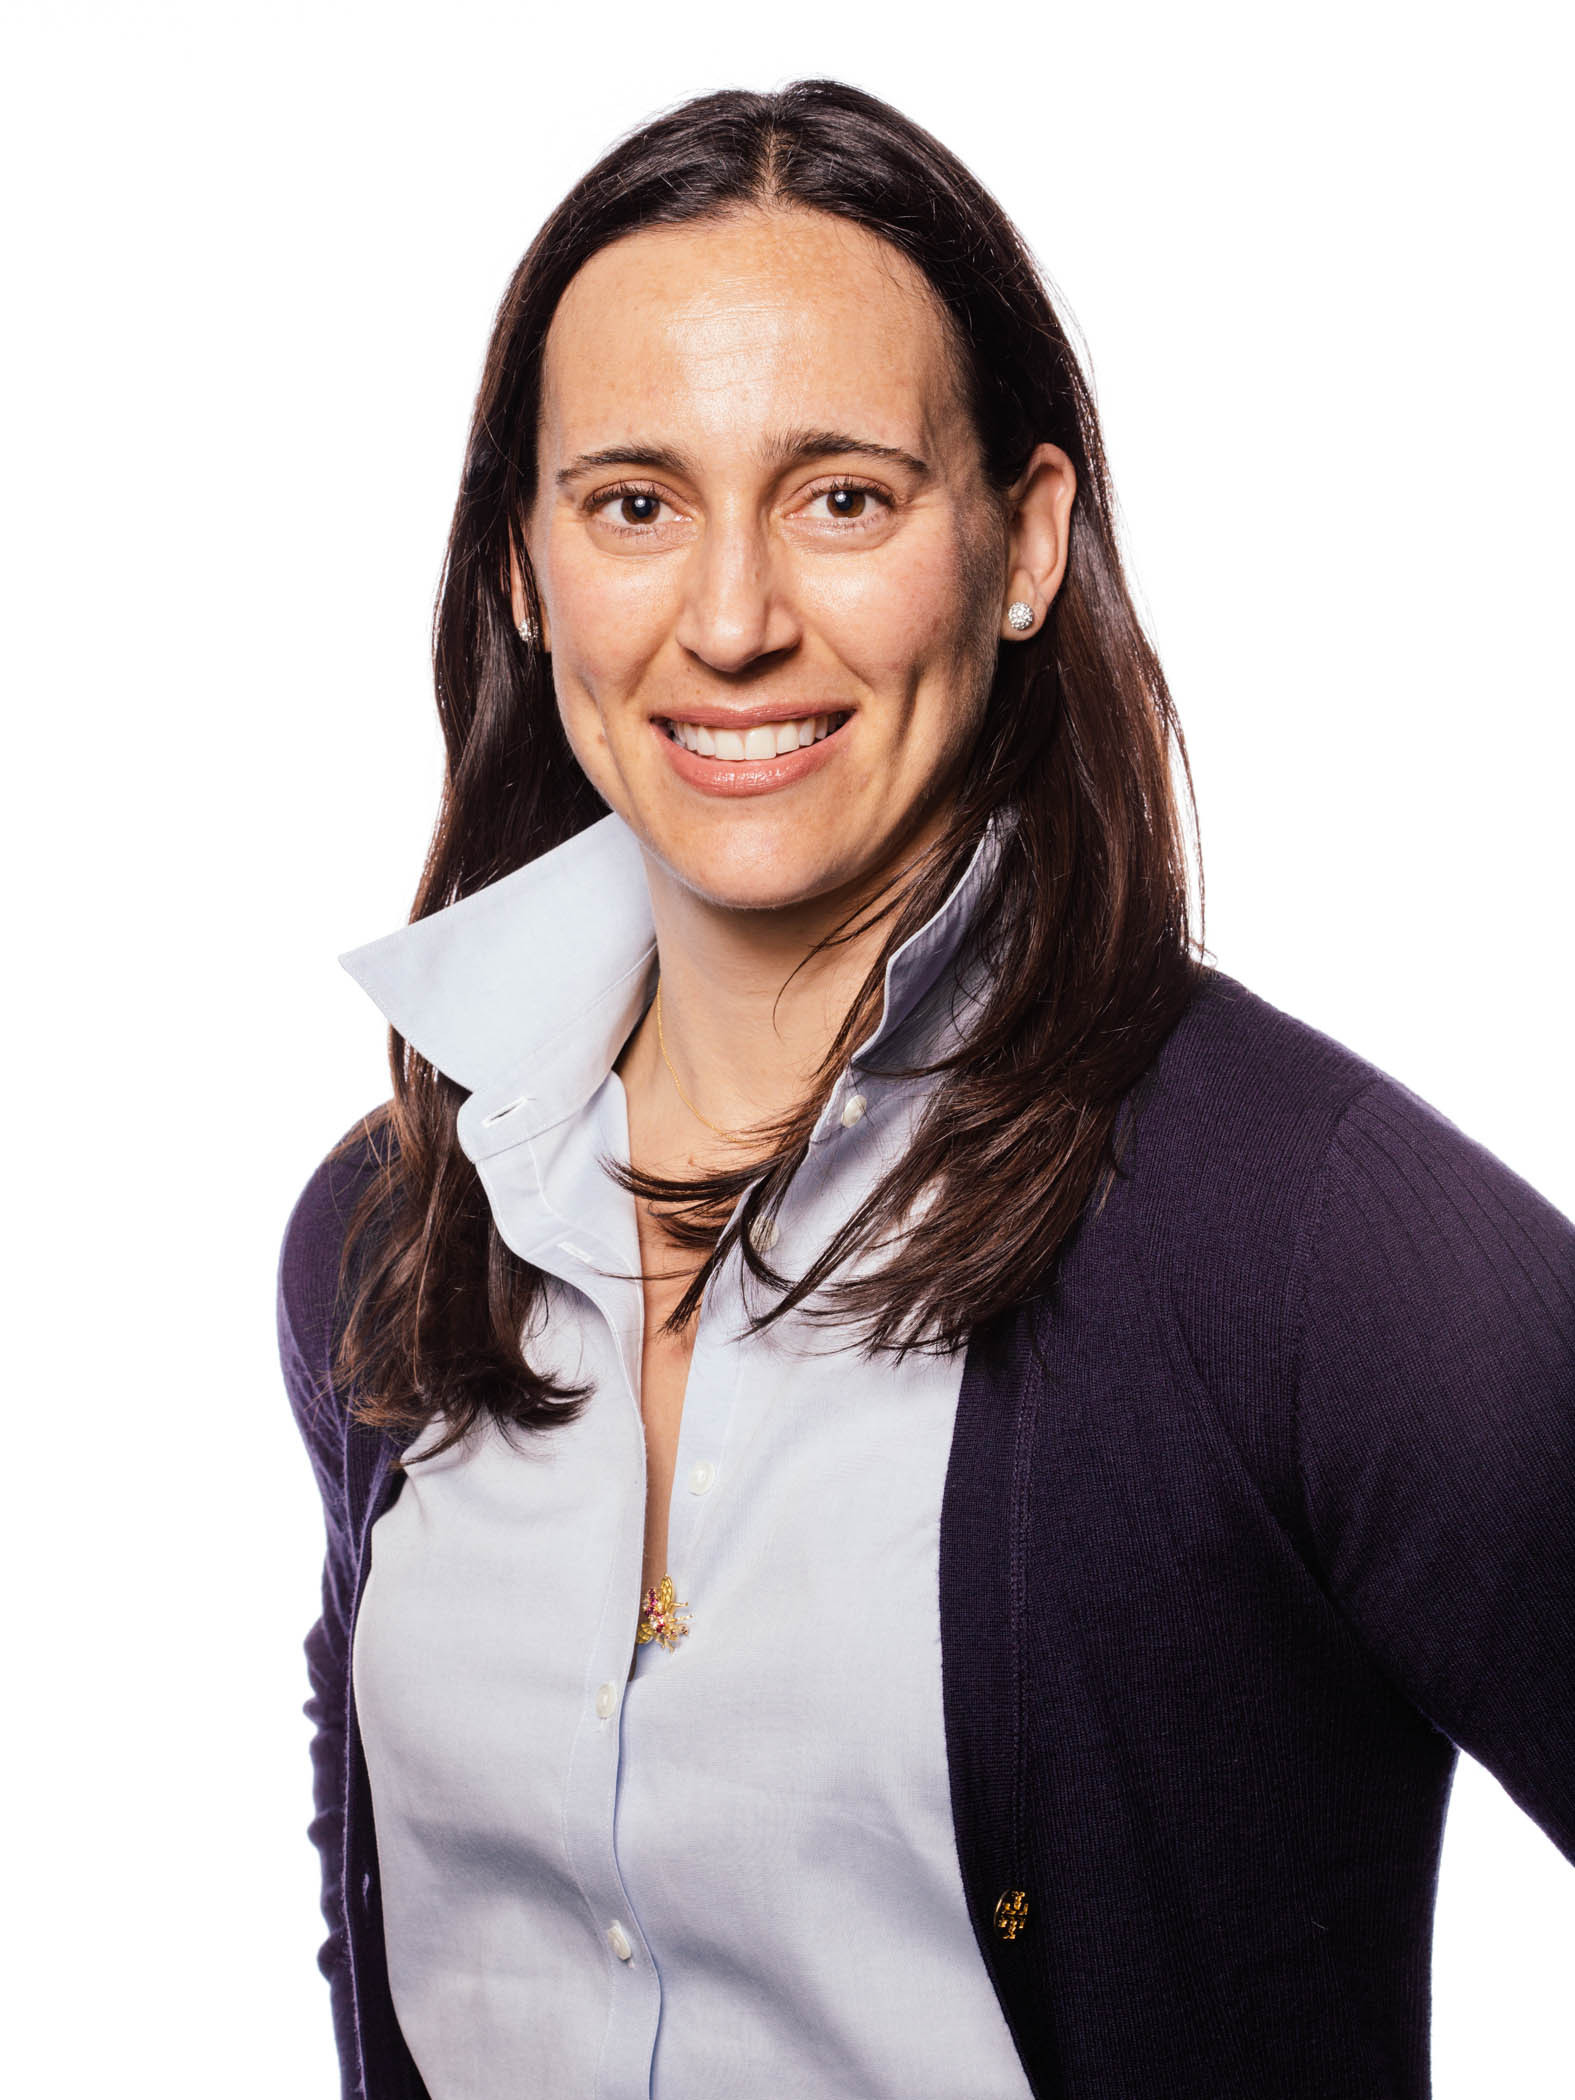 Beth Viner Named CEO of Interbrand New York & San Francisco (Photo: Business Wire)